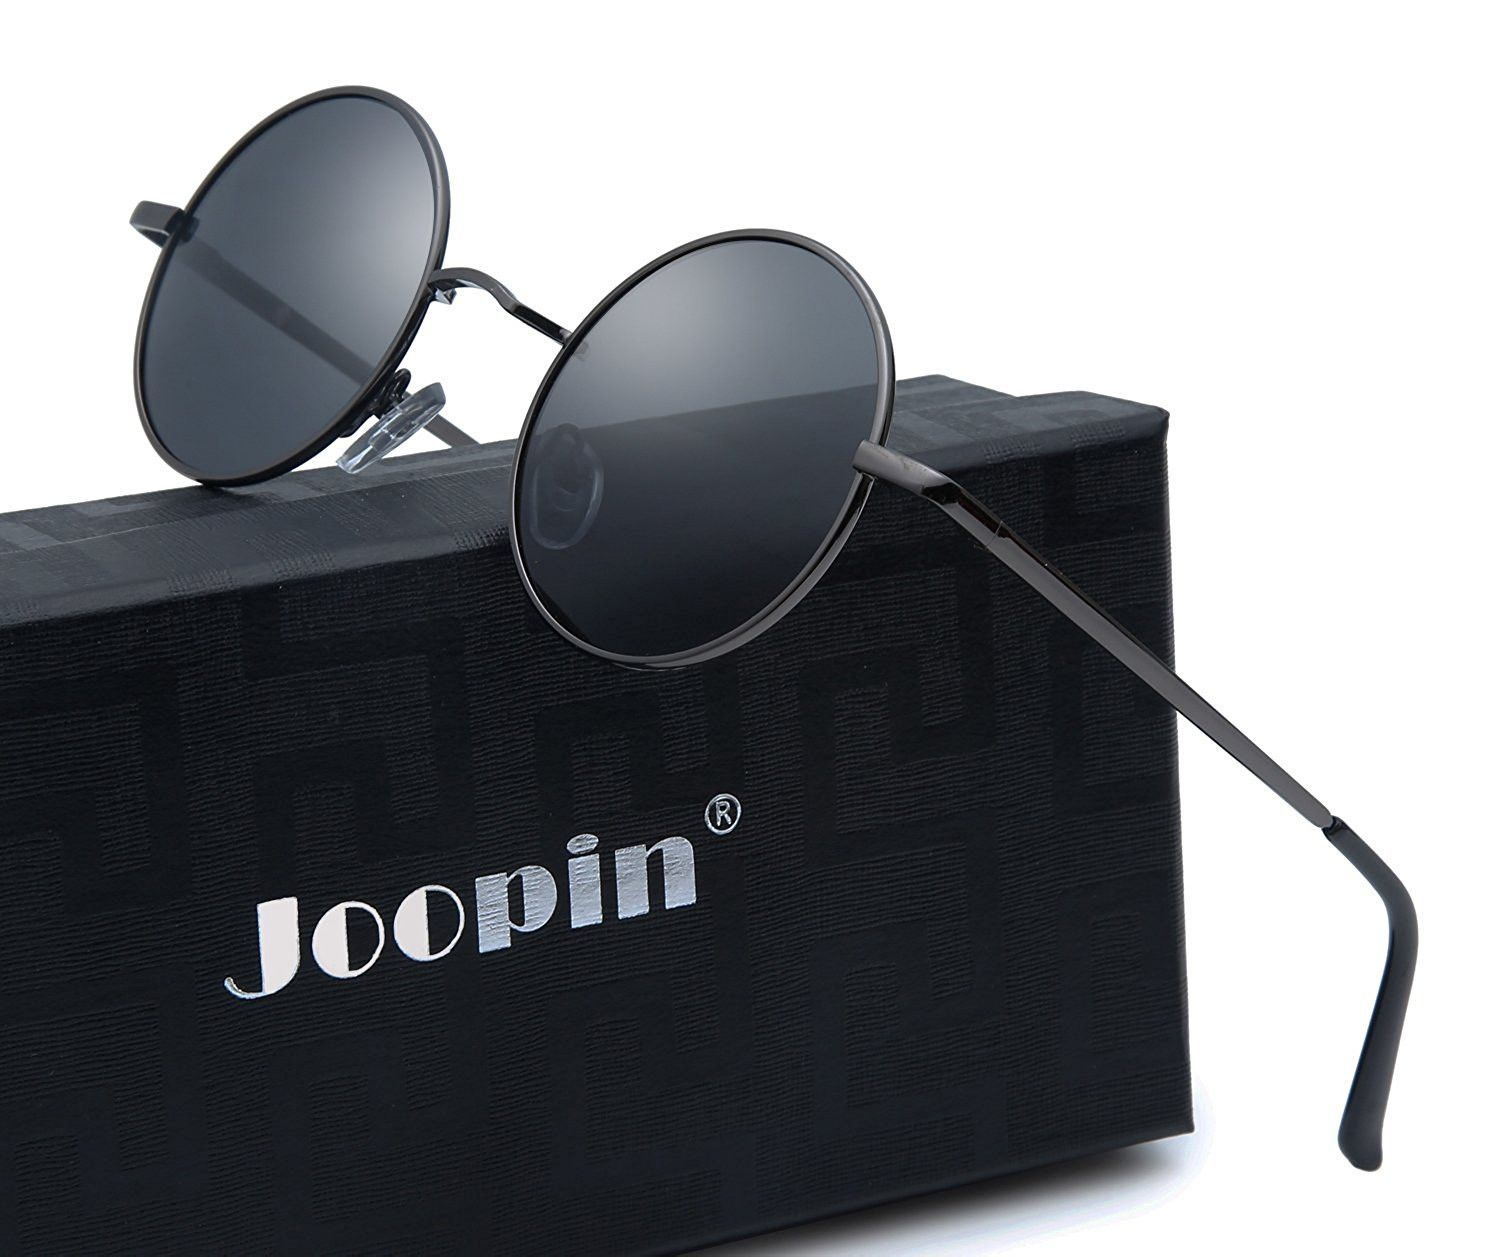 5152c99d8c Joopin Round Retro Polaroid Sunglasses Driving Polarized Glasses Men  Steampunk